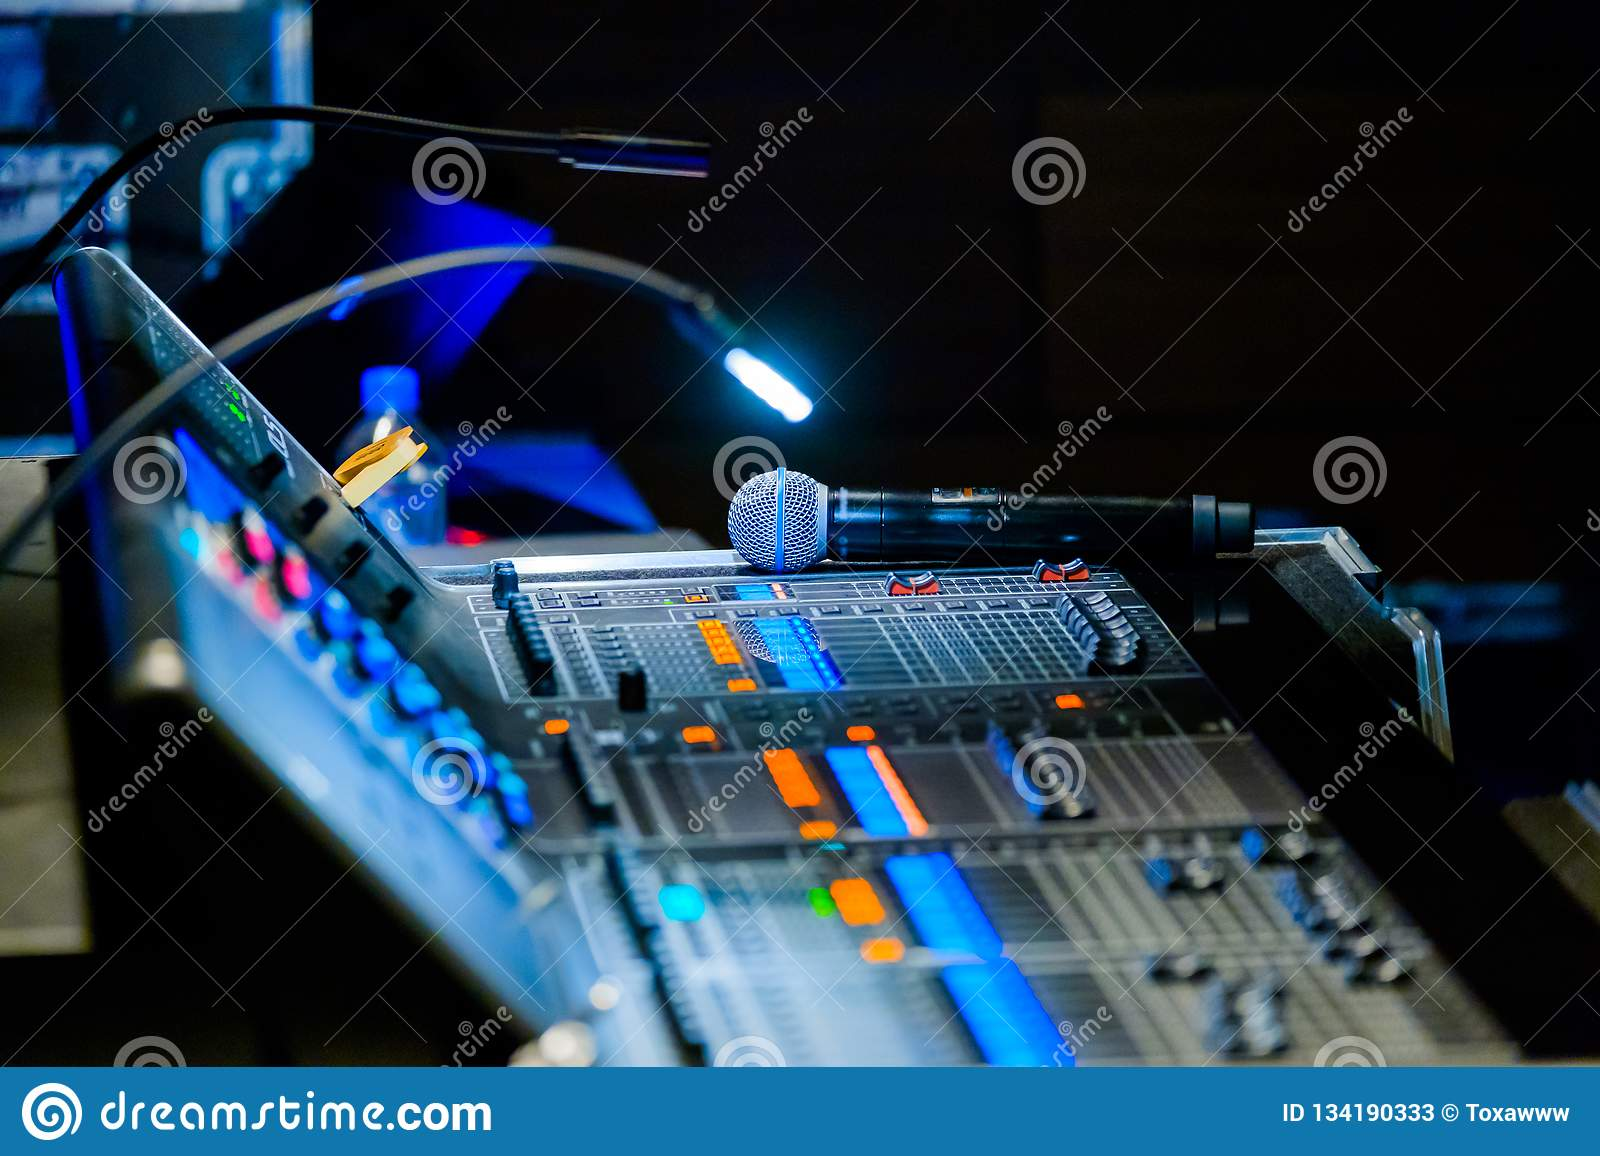 Broadcast audio and video equipment working